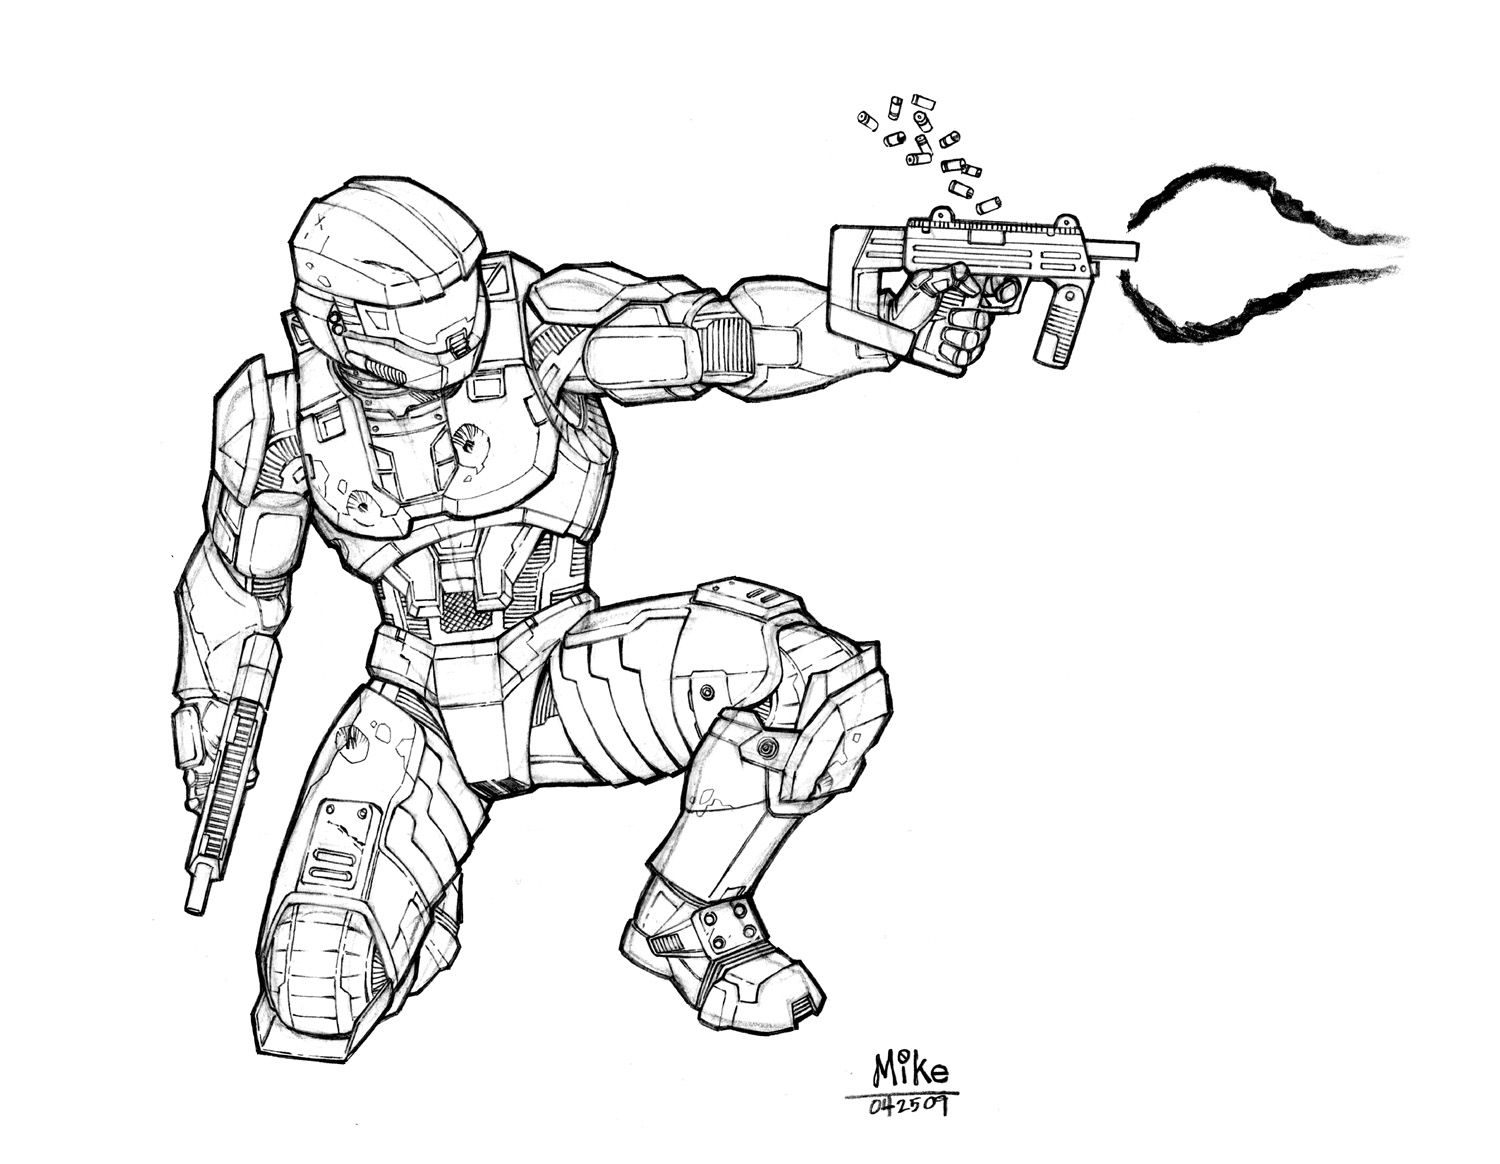 Coloring pages halo - Coloring Pages Master Chief Coloring Pages Master Chief Coloring Pages Futpal Com Halo Auromas